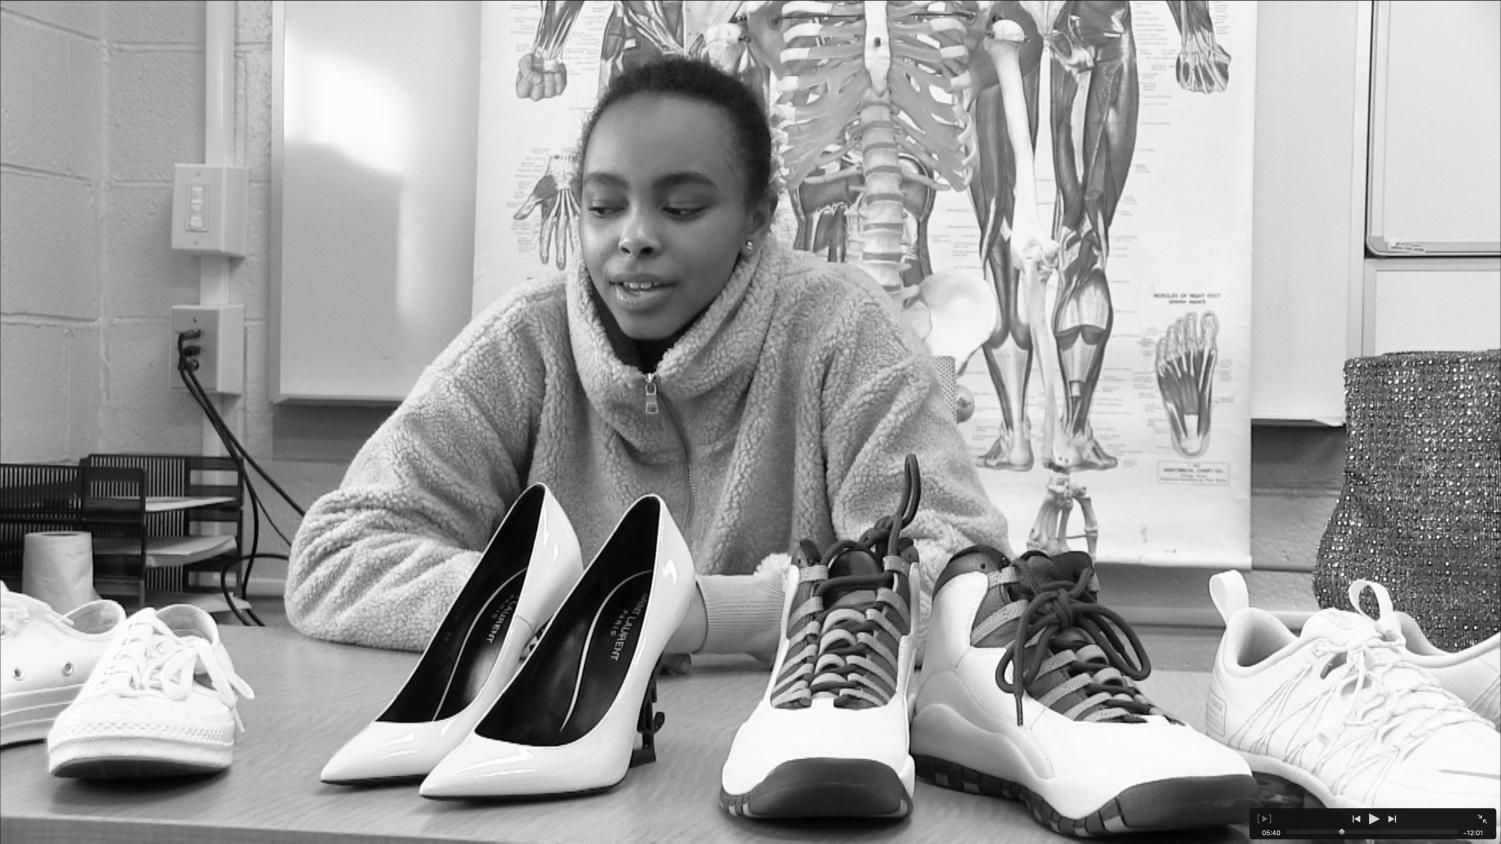 Doyin Best '20 shows off some of her extensive shoe collection